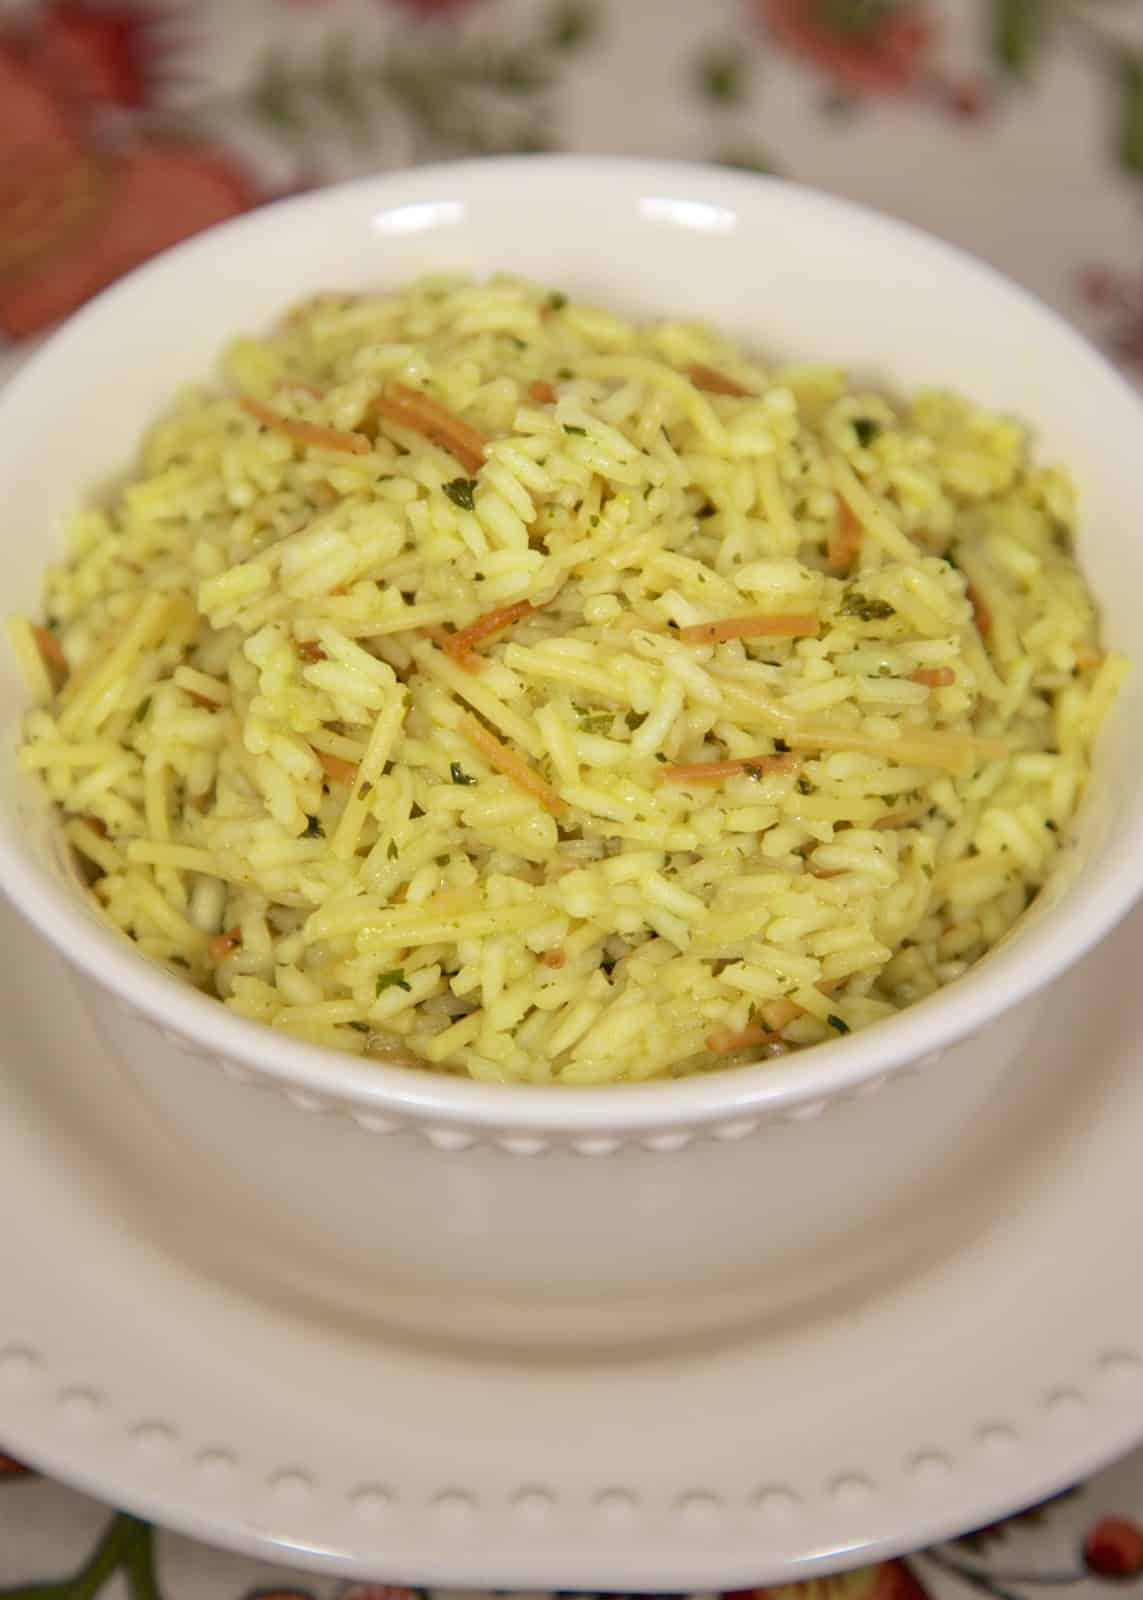 Homemade Chicken Rice-A-Roni Recipe - you'll never use the boxed stuff again! Rice, spaghetti, chicken bouillon, Italian seasoning, parsley, garlic powder. SO good and super easy to make. I like to mix up the ingredients and put into baggies for a quick side dish during the week.